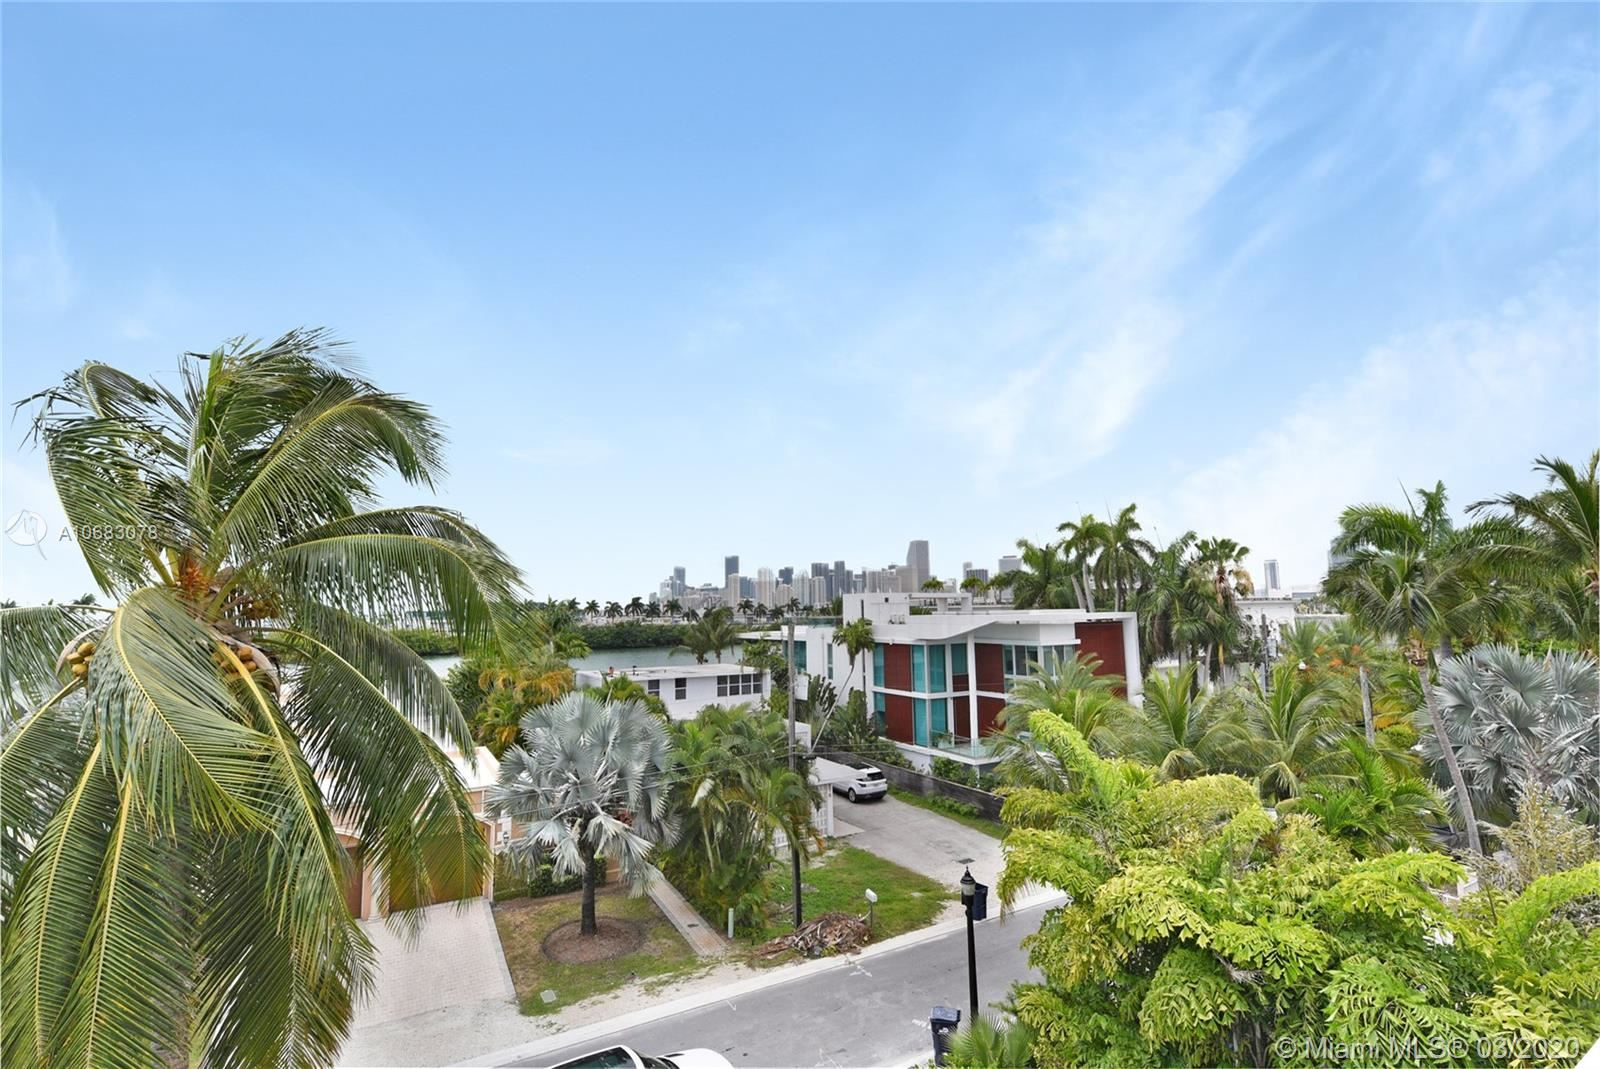 Photo 22 of Listing MLS a10683078 in 272 Palm Ave Miami Beach FL 33139